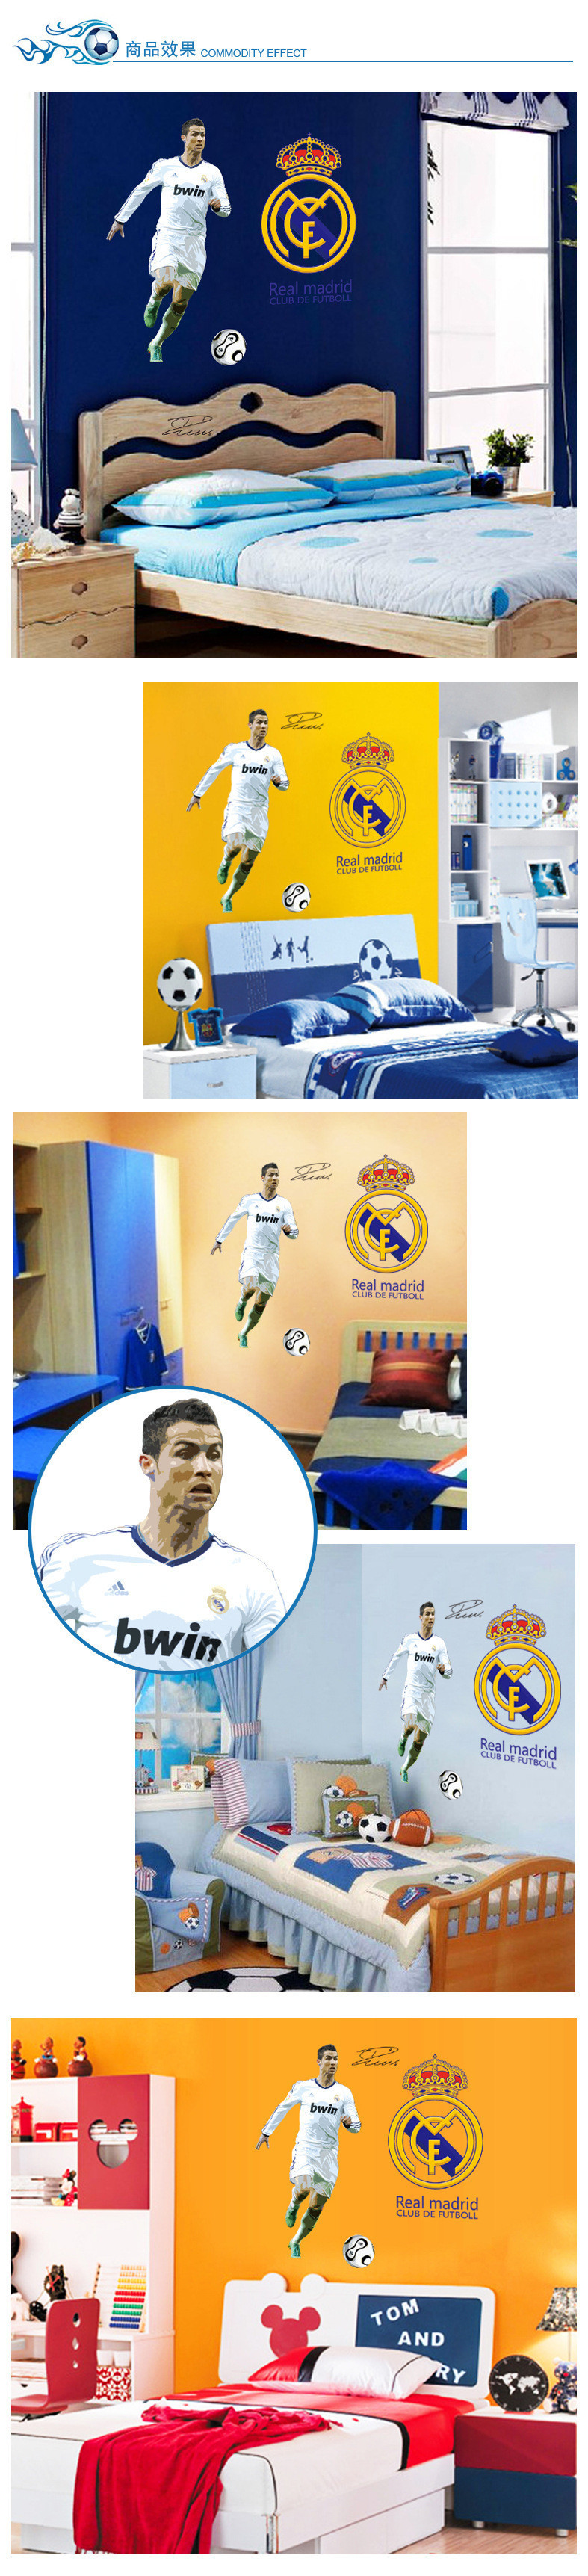 grand sticker geant mural 110x90 christiano ronaldo cr7. Black Bedroom Furniture Sets. Home Design Ideas